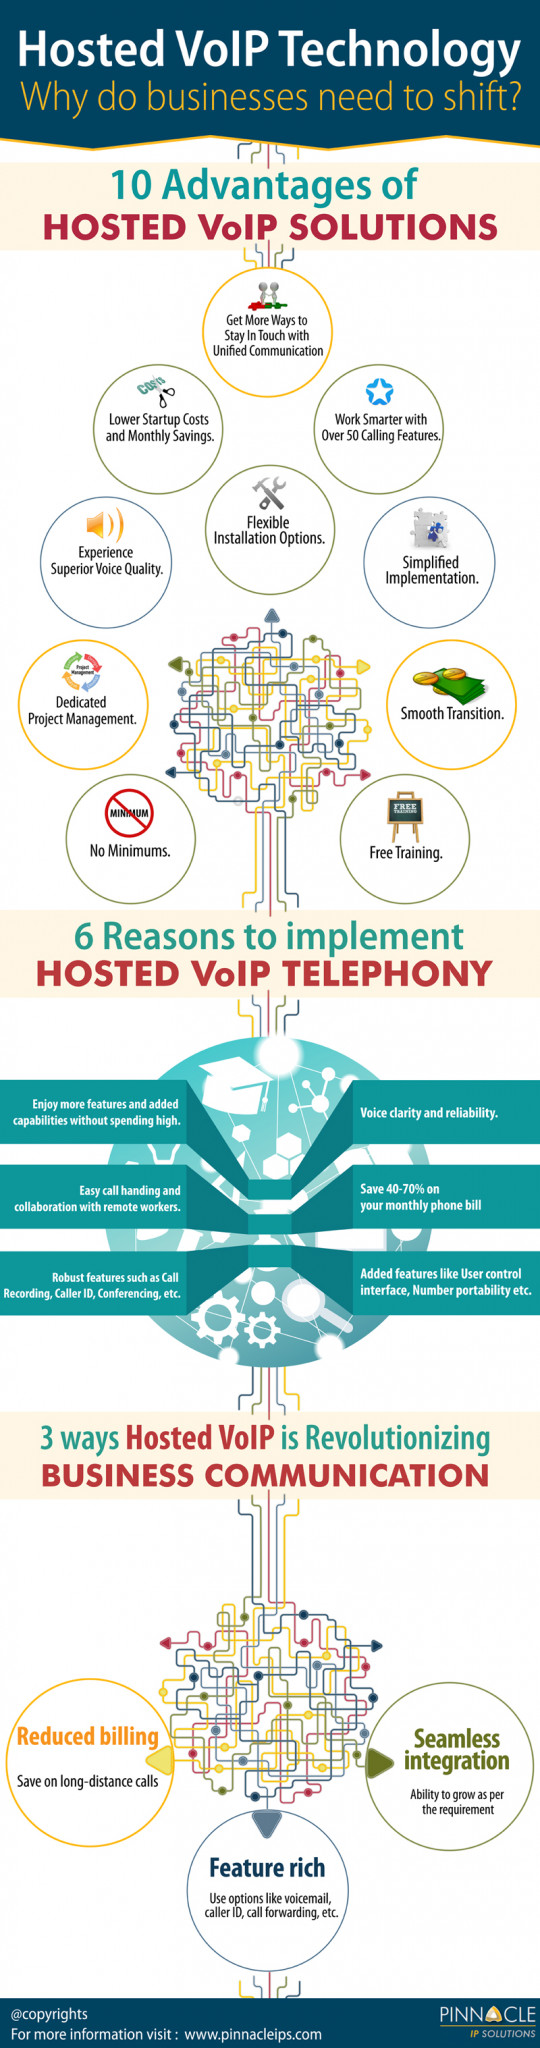 Hosted VoIP Technology : Why Do Businesses Need To Shift